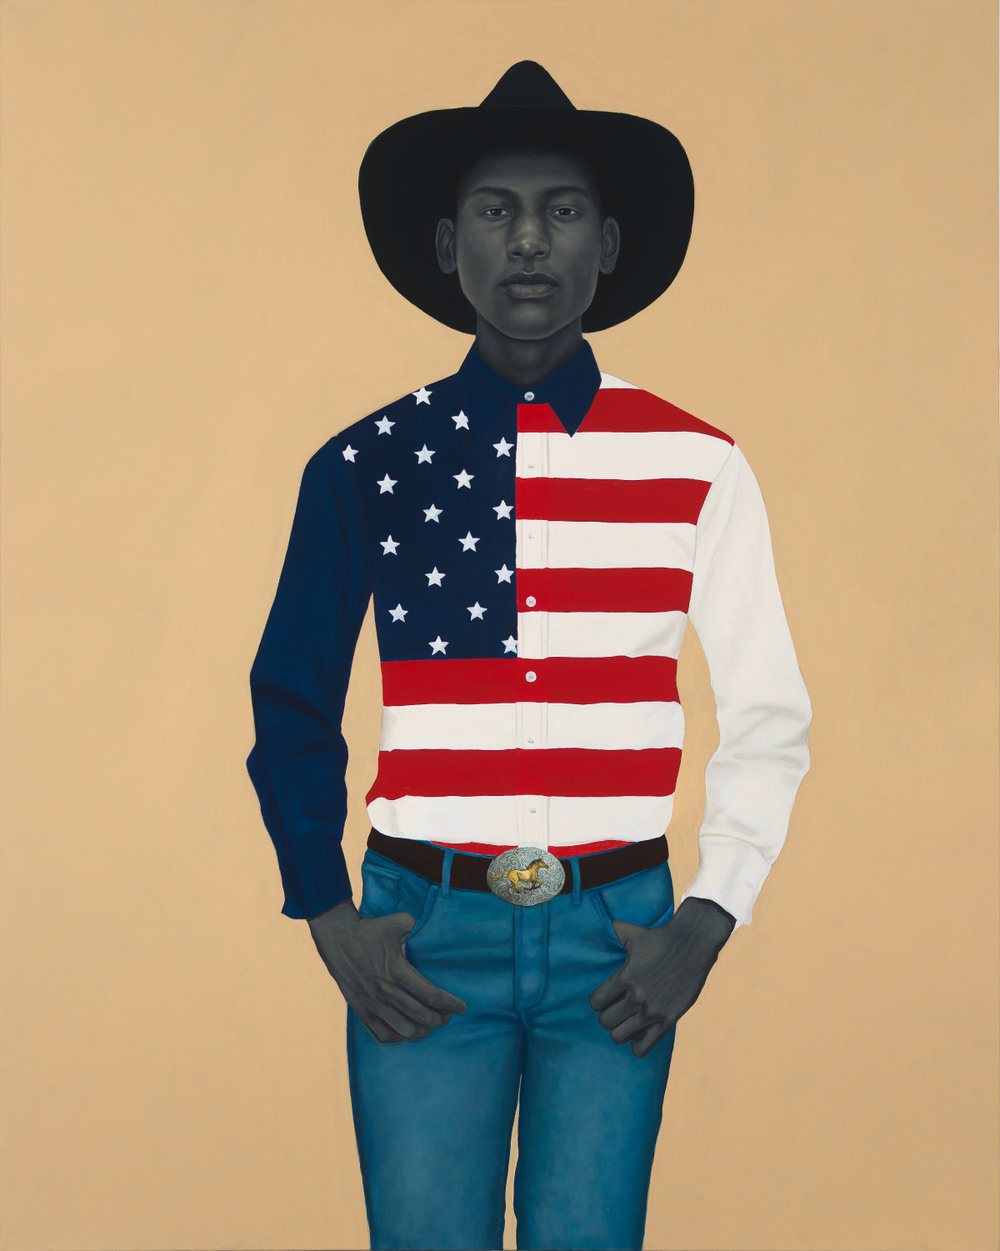 Amy Sherald, What's precious inside of him does not care to be known by the mind in ways that diminish its presence (All American), 2017, oil on canvas. 54 x 43 in. (137.2 x 109.2 cm). Private collection, Chicago, IL. Courtesy the artist and Monique Meloche Gallery, Chicago.